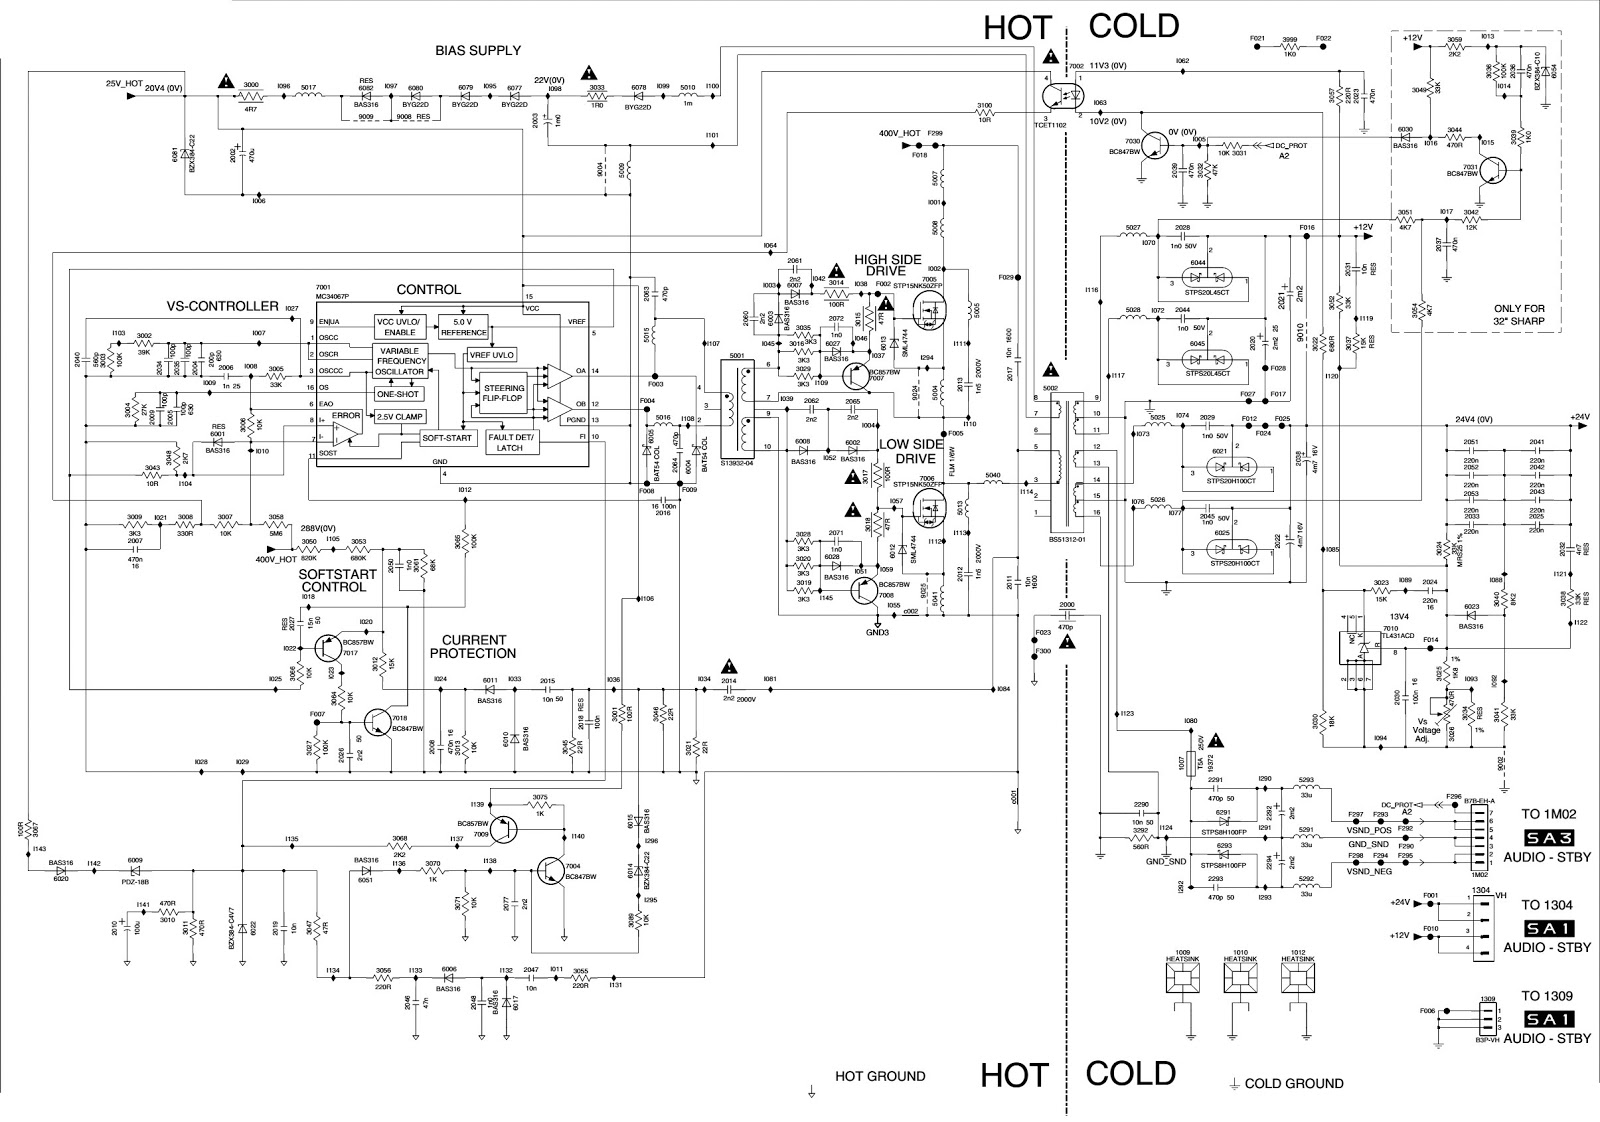 Control Regulation Circuit Remotecontrolcircuit Diagram On Off Remote Board Guide And Troubleshooting Of Wiring Philips 30 Inch 32 Lcd Tv Power Supply Regulator Smps Schematic Electro Help